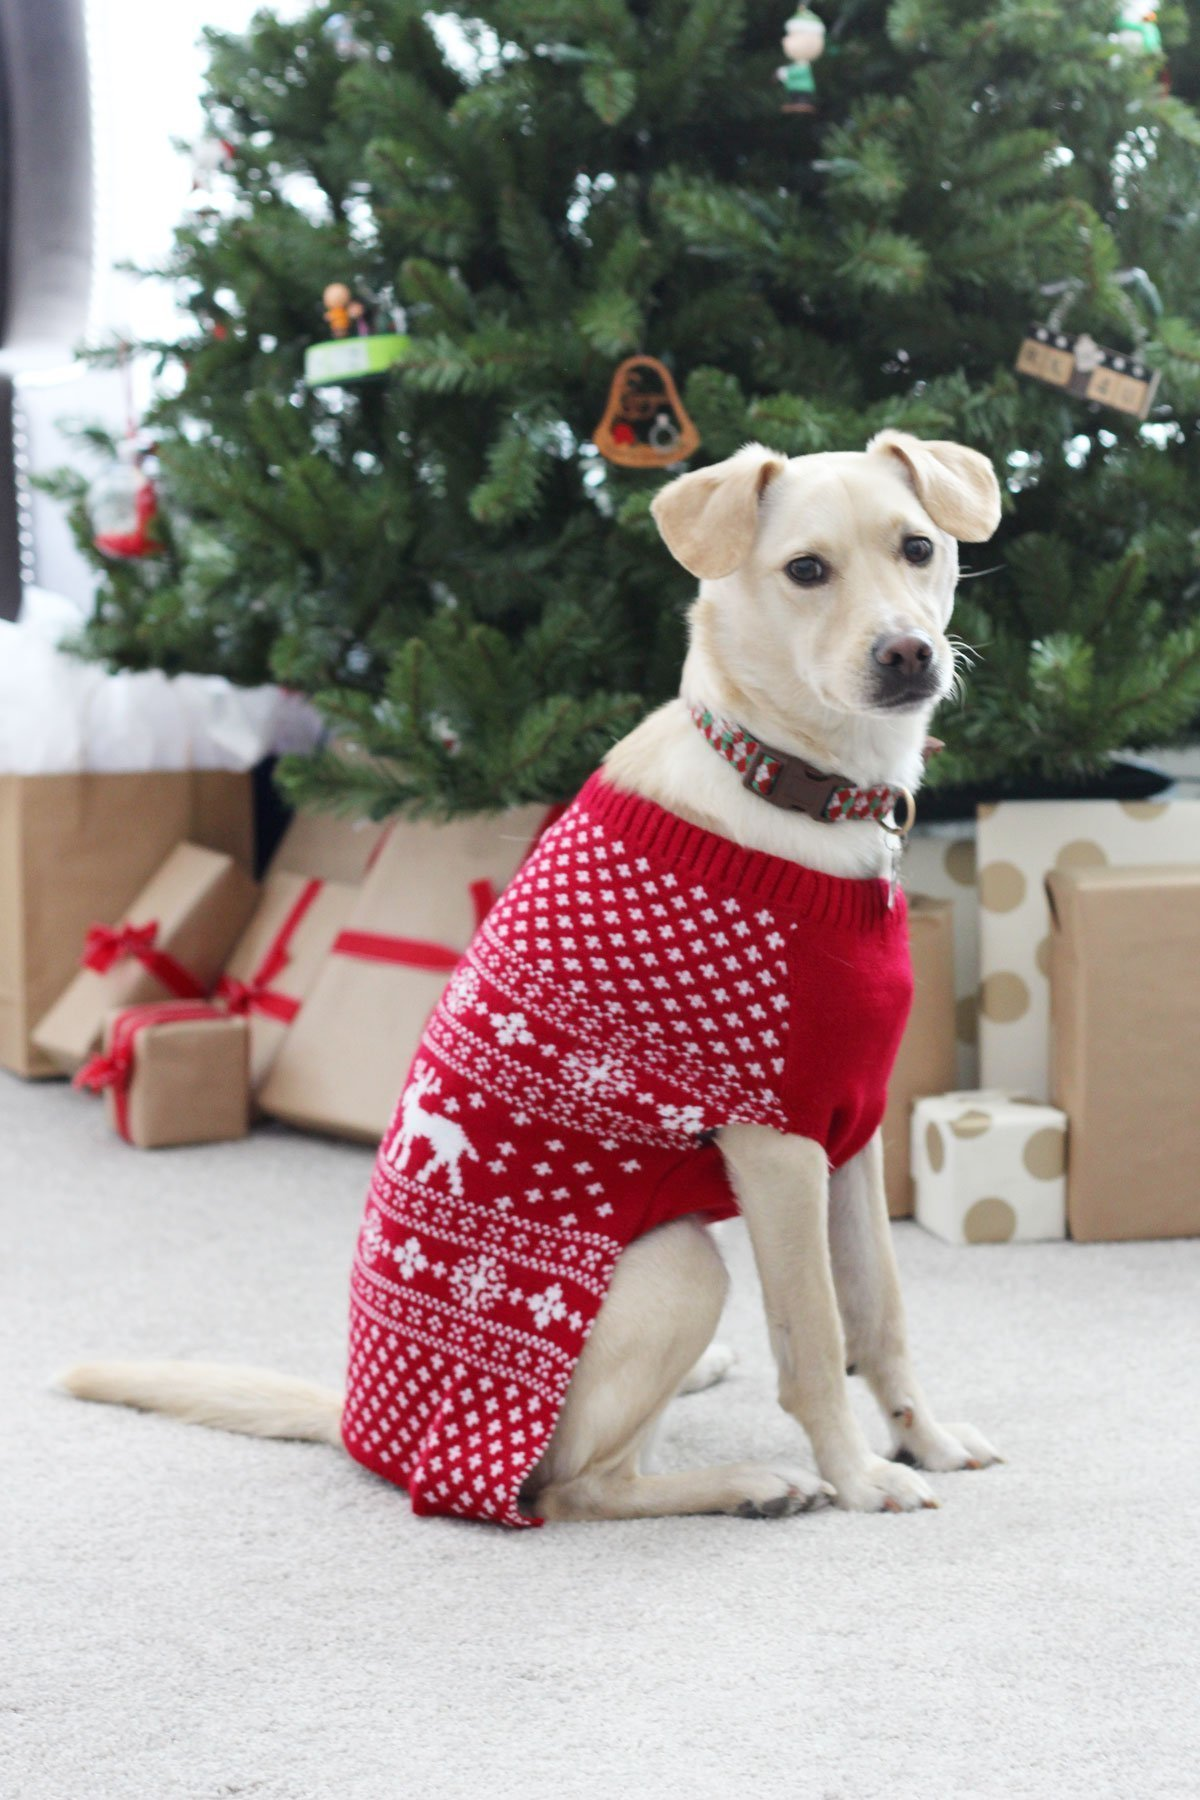 Red fair aisle dog sweater